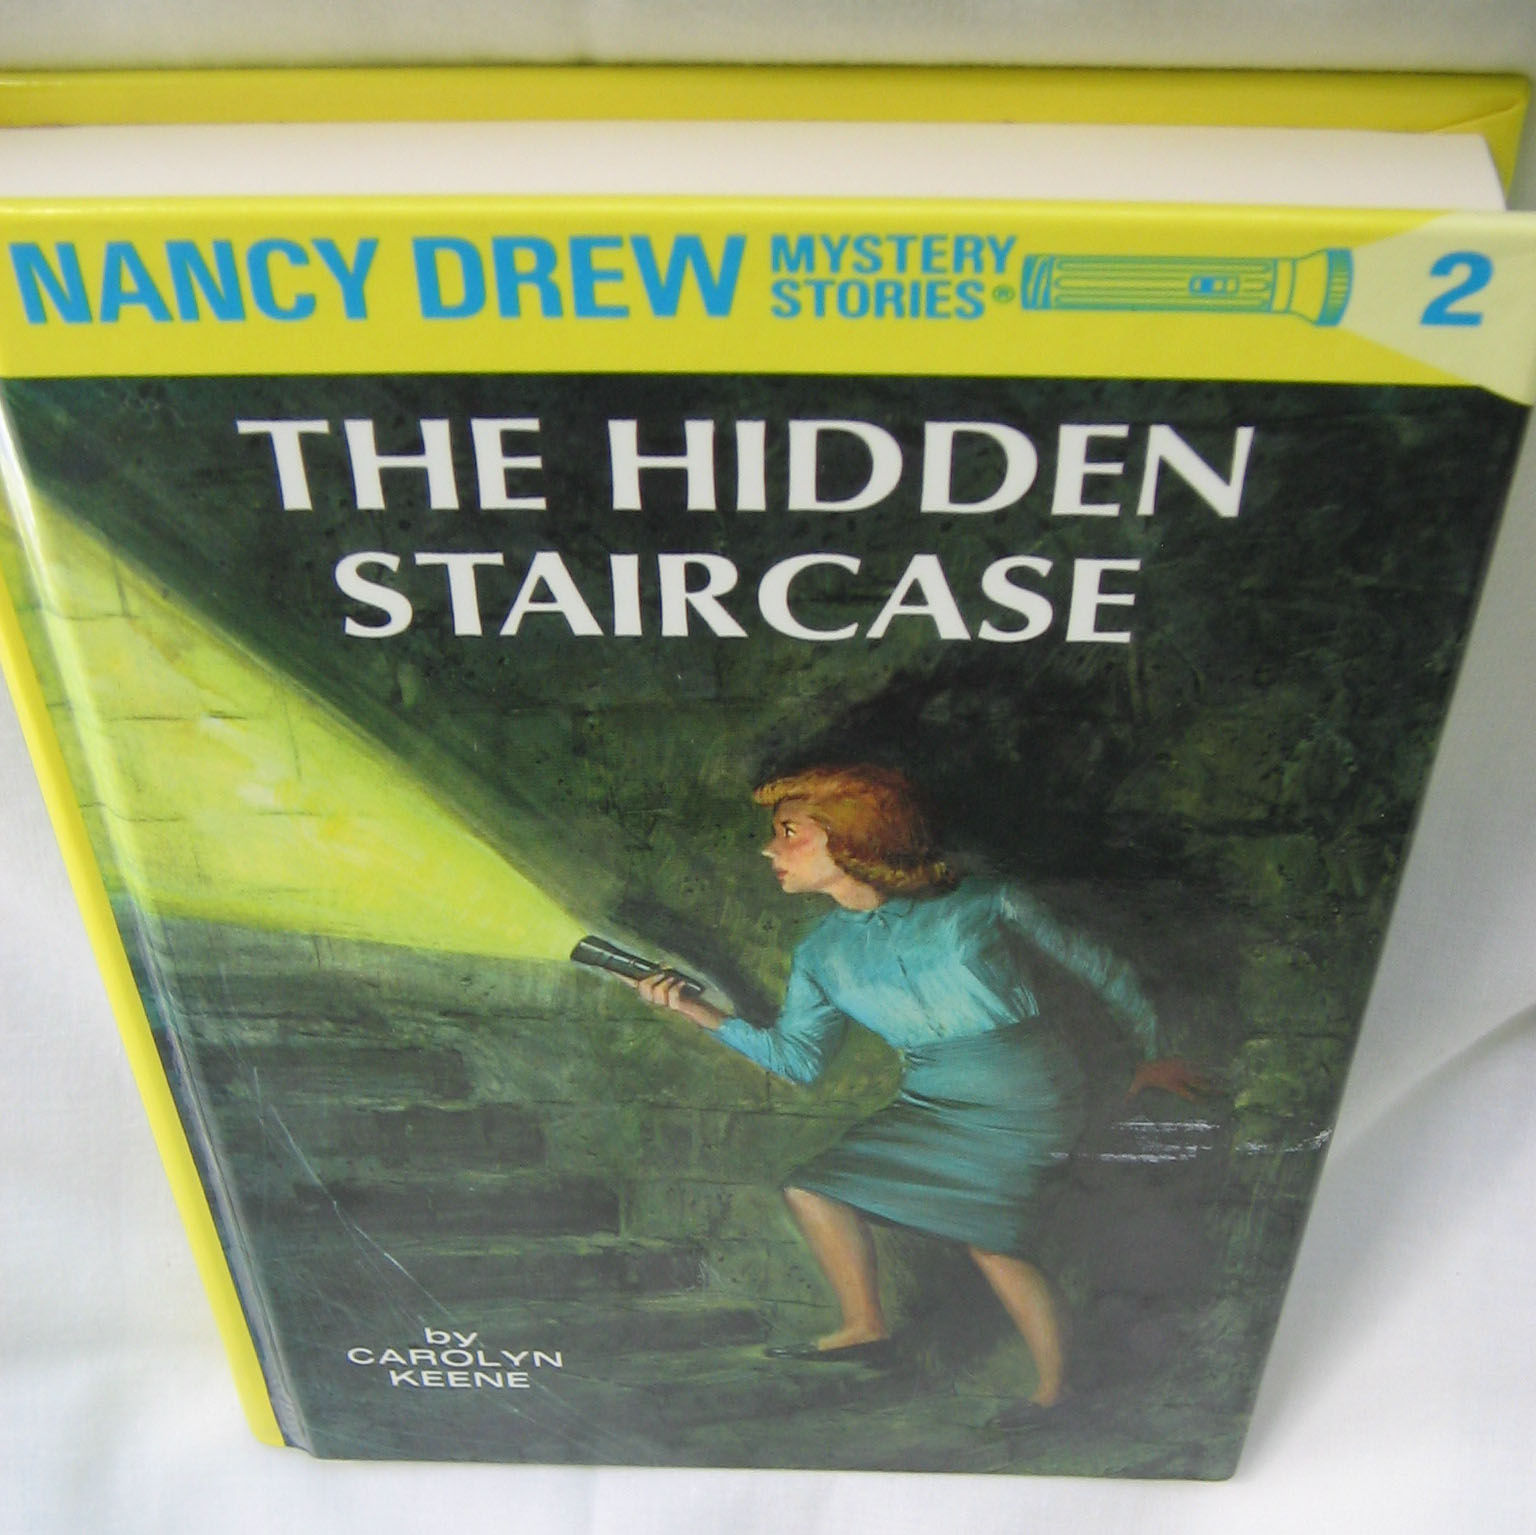 The Hidden Staircase By Carolyn Keene   Hardcover   May 1, 1976   From  Adventures In Books And Biblio.com